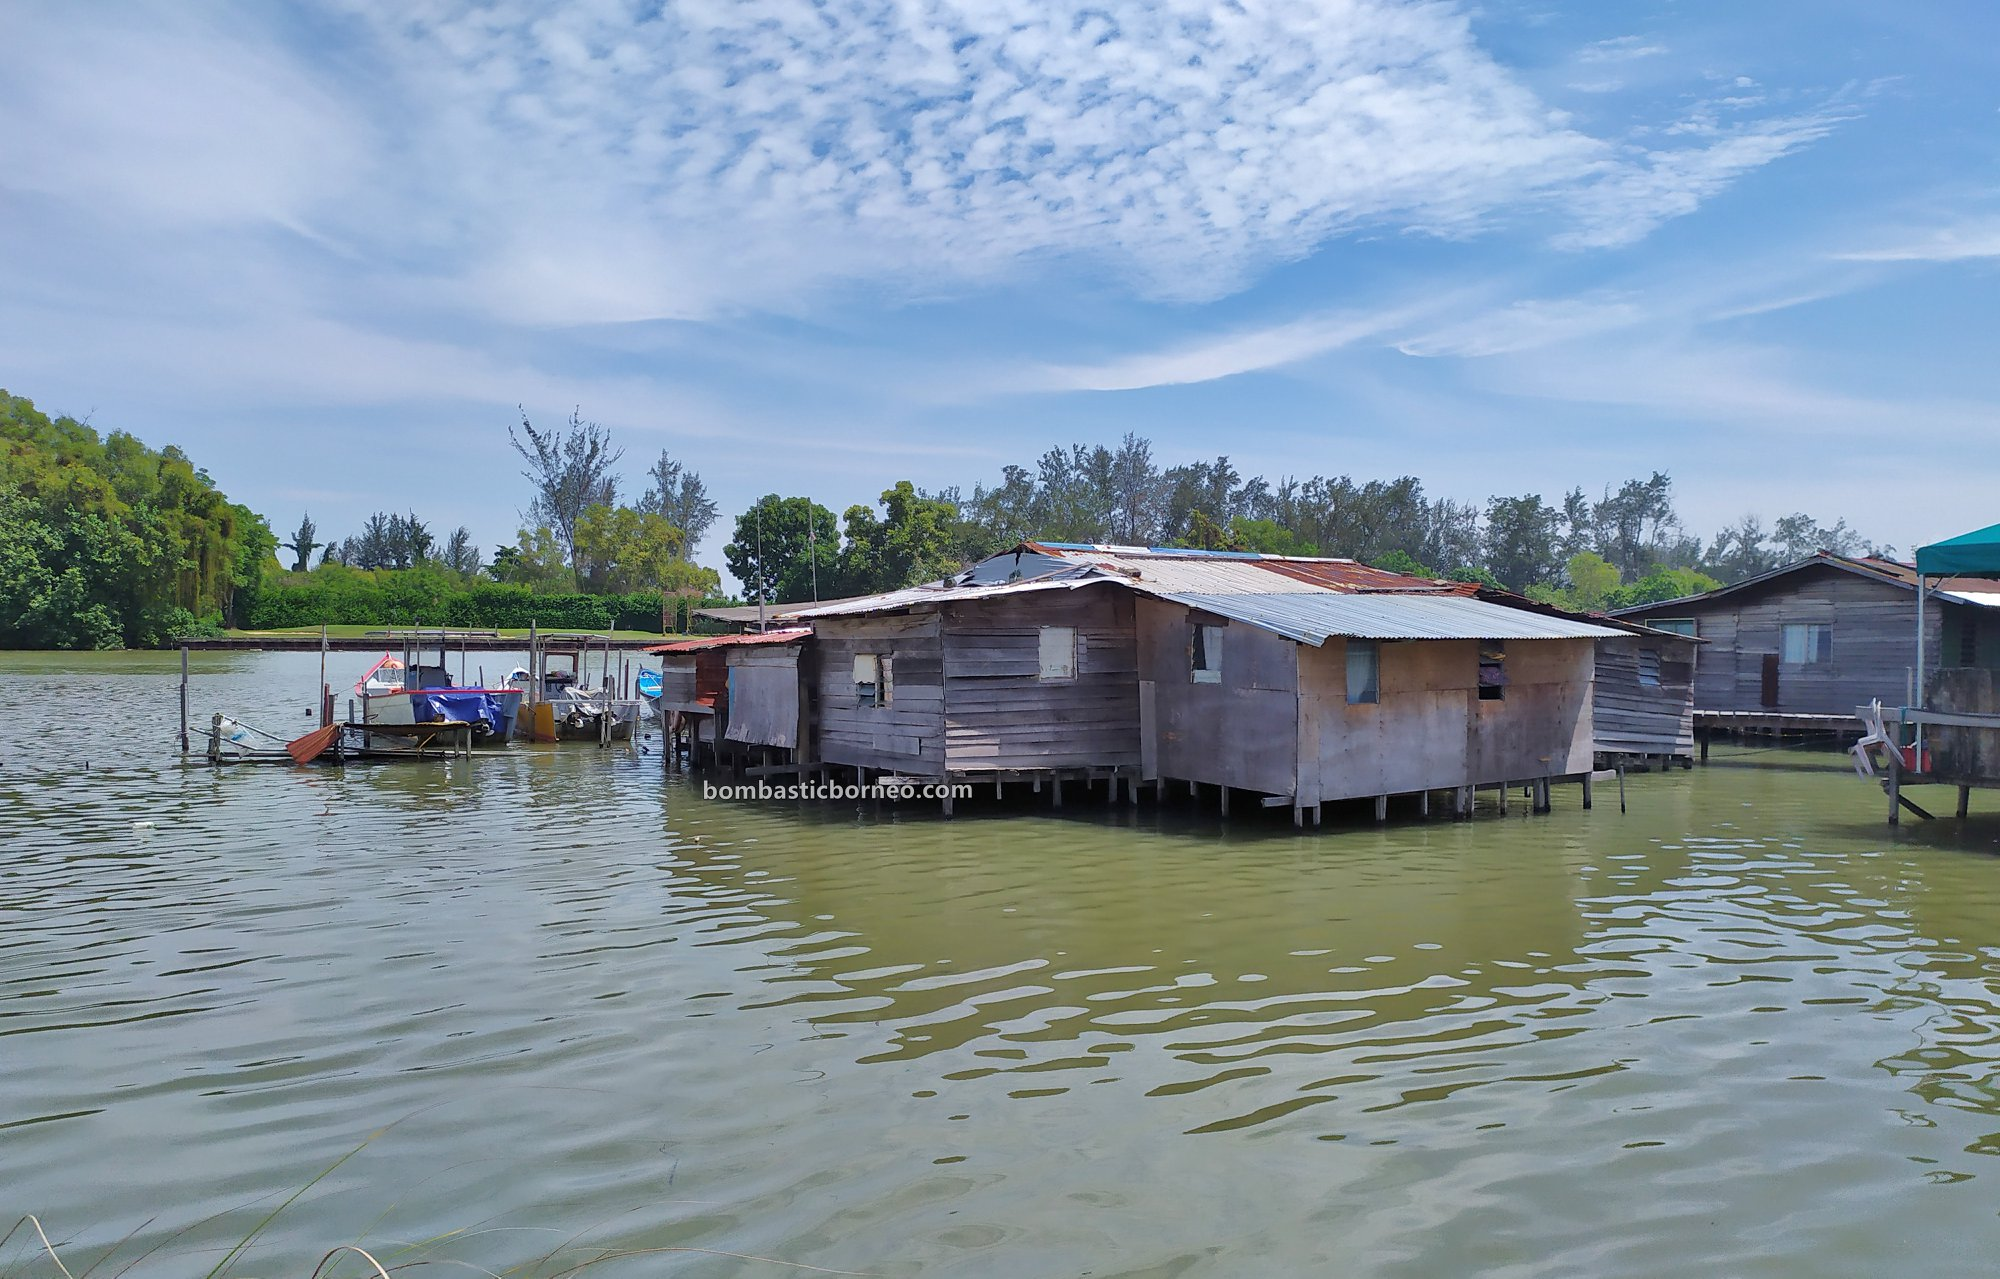 backpackers, Discover Miri City, exploration, floating house, Miri waterfront, Seahorse, Tourism, tourist attraction, Trans Borneo, 探索婆罗洲游踪, 马来西亚水上之家. 砂拉越美里旅游景点